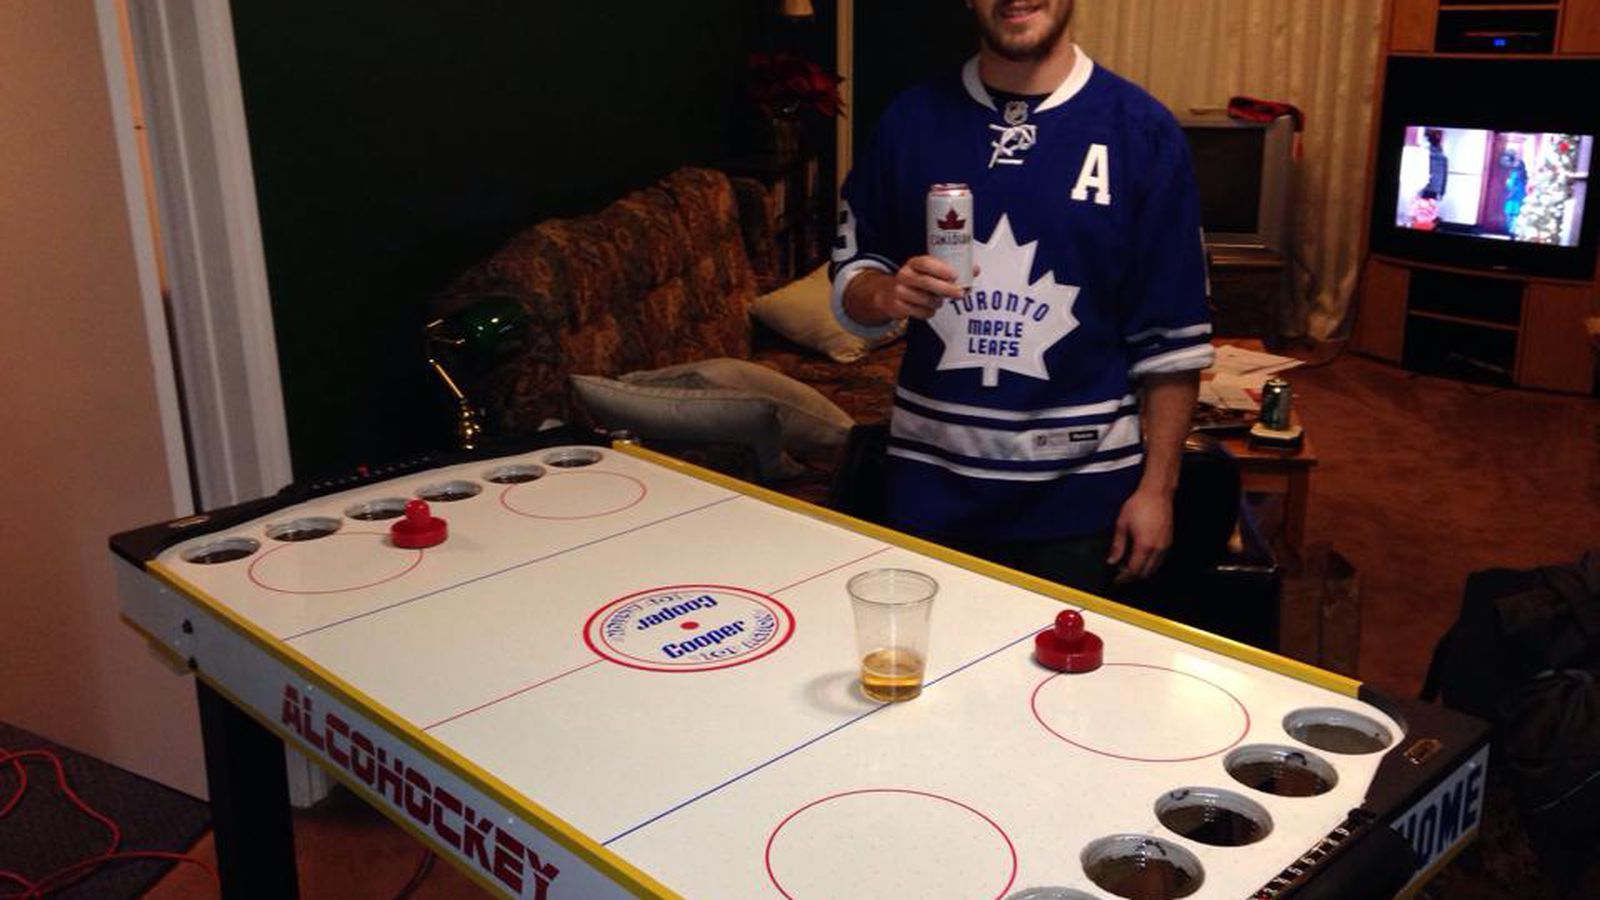 Hockey beer pong table - Hockey Beer Pong Table 46